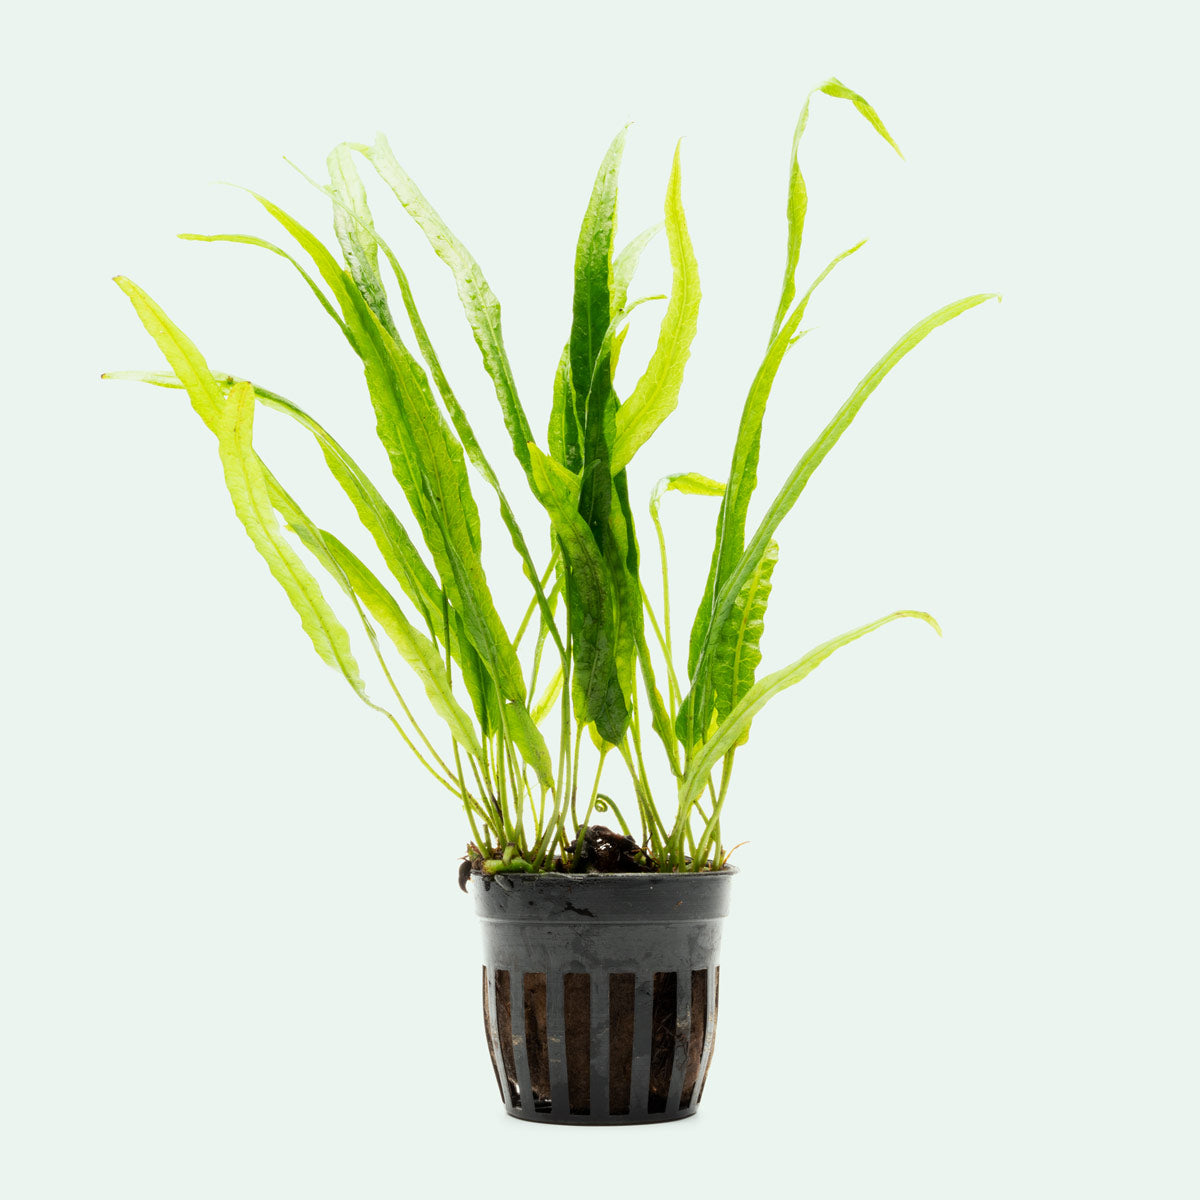 Shop Microsorum Pteropus Needle Leaf Aquatic Plants - Glass Aqua